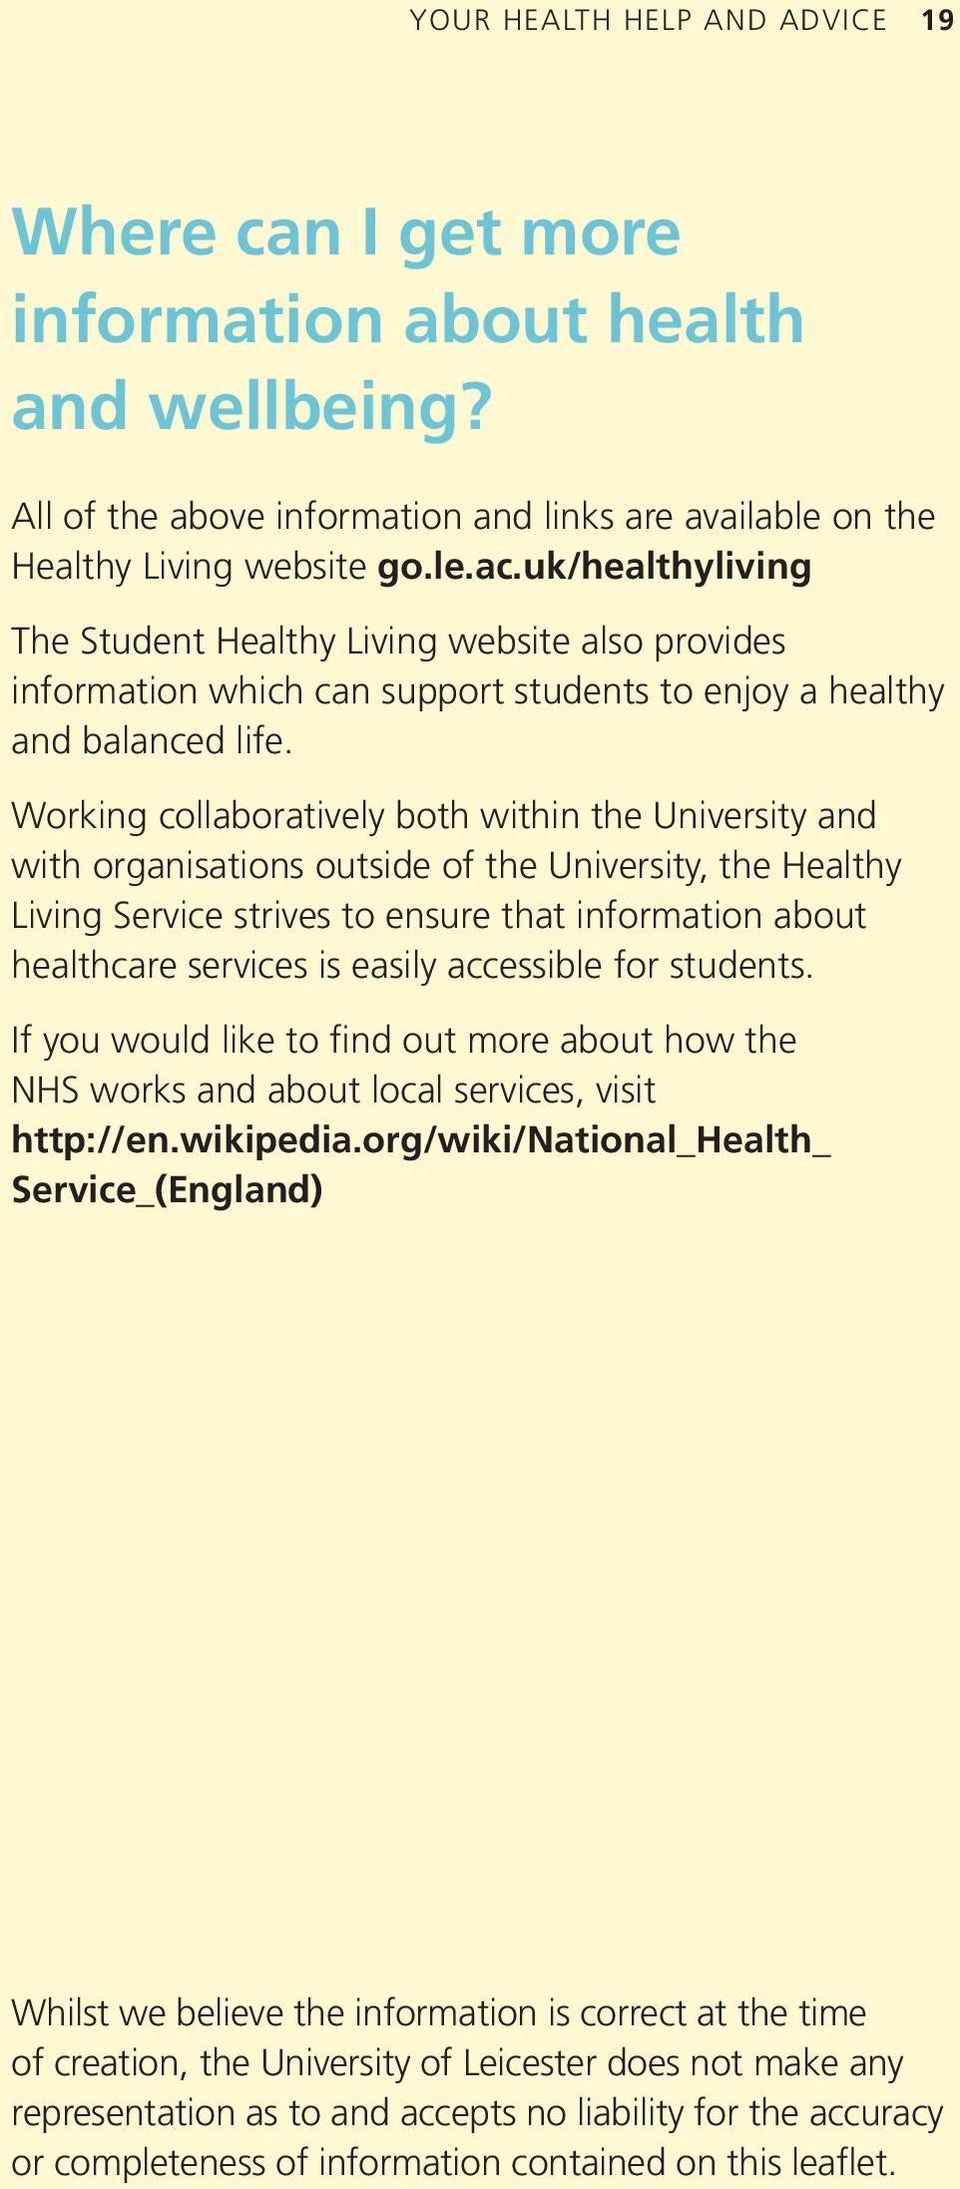 Working collaboratively both within the University and with organisations outside of the University, the Healthy Living Service strives to ensure that information about healthcare services is easily